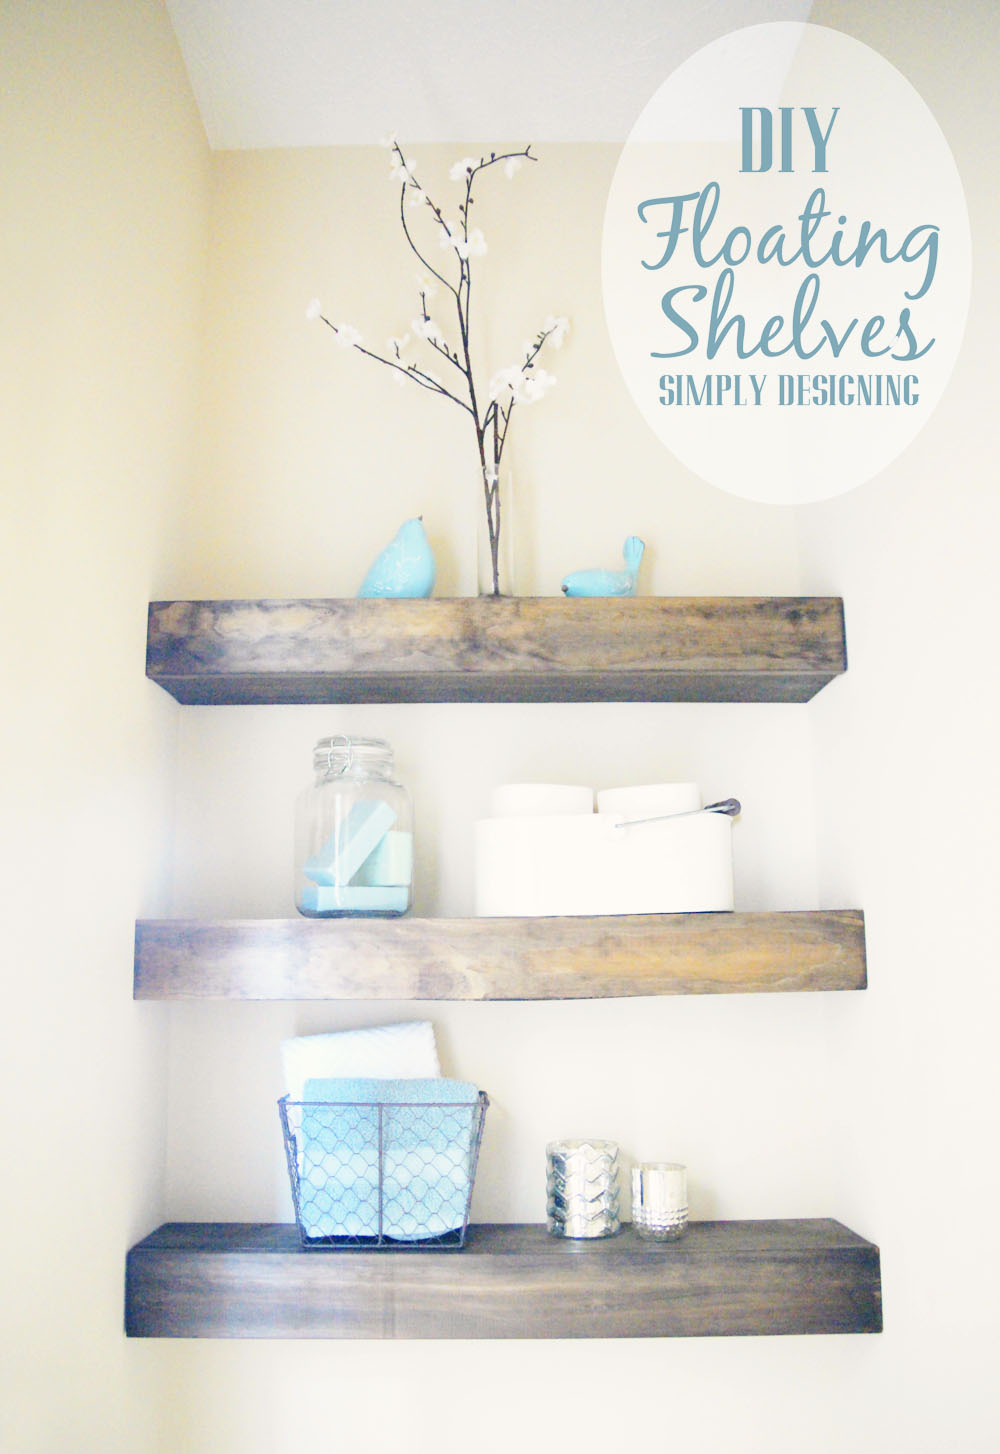 diy floating shelves how to measure cut and install. Black Bedroom Furniture Sets. Home Design Ideas